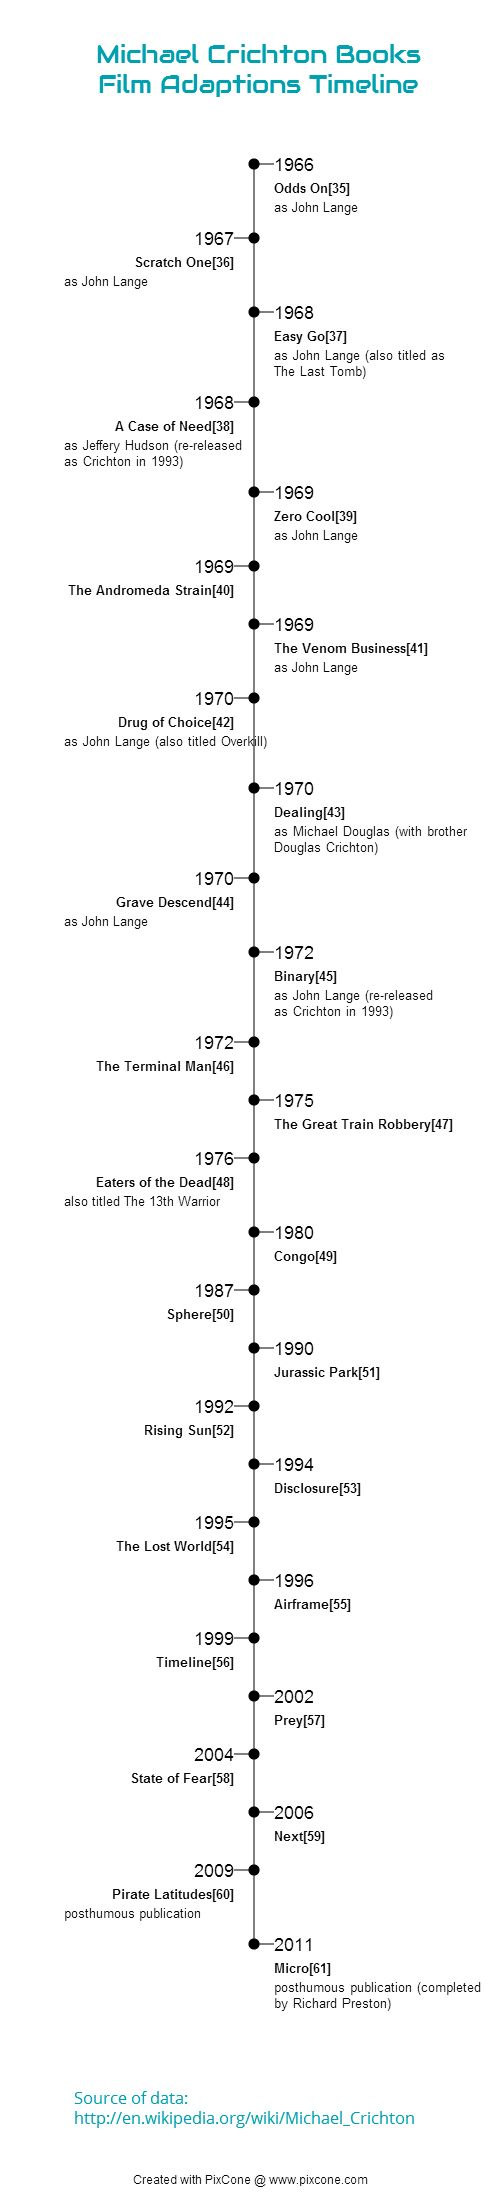 An Infographic showing the Timeline of Film adaptions of M.Crichton's books. Built with PixCone (please note that this is a Data-Driven-Infographics) - discover more at pixcone.com